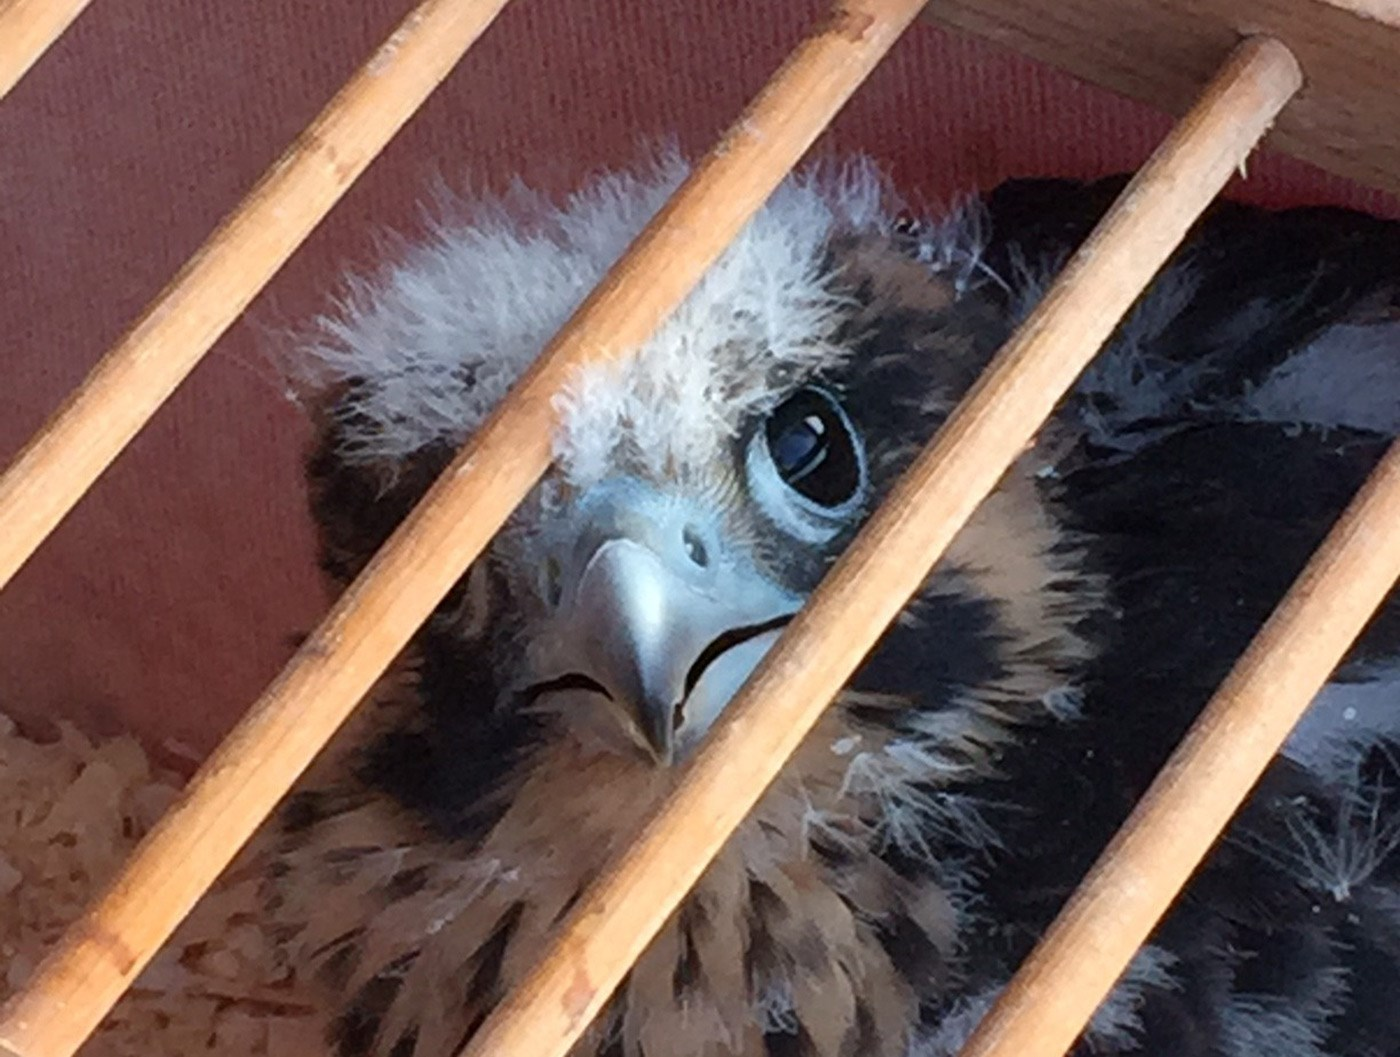 A fallen Falcon chick looks at the camera through a cage.